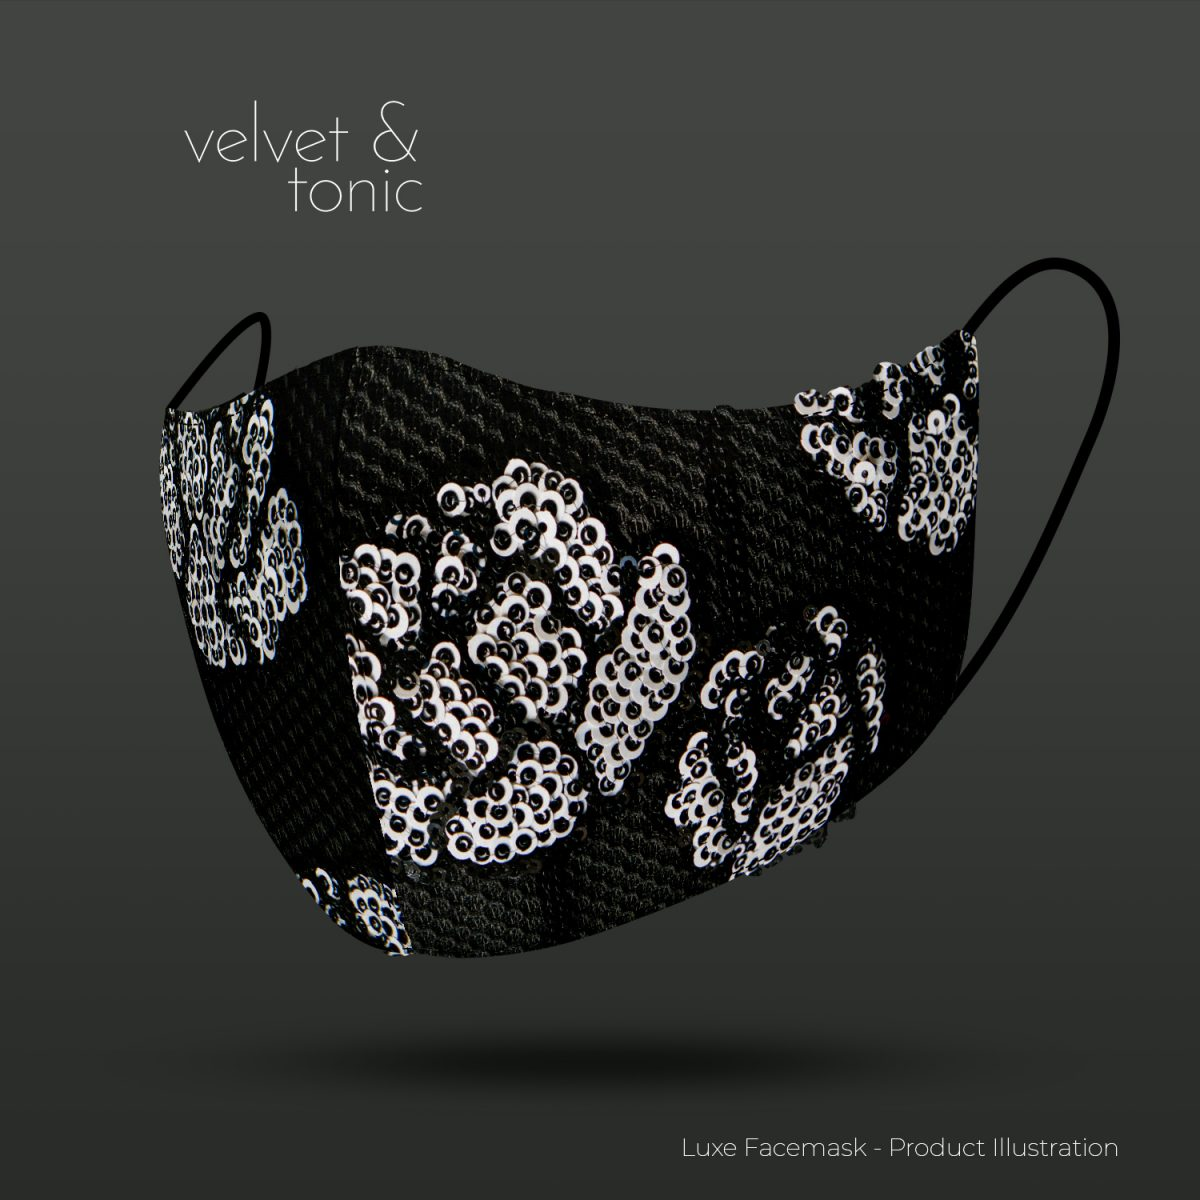 Sequin Designer Facemask - Most luxurious facemask